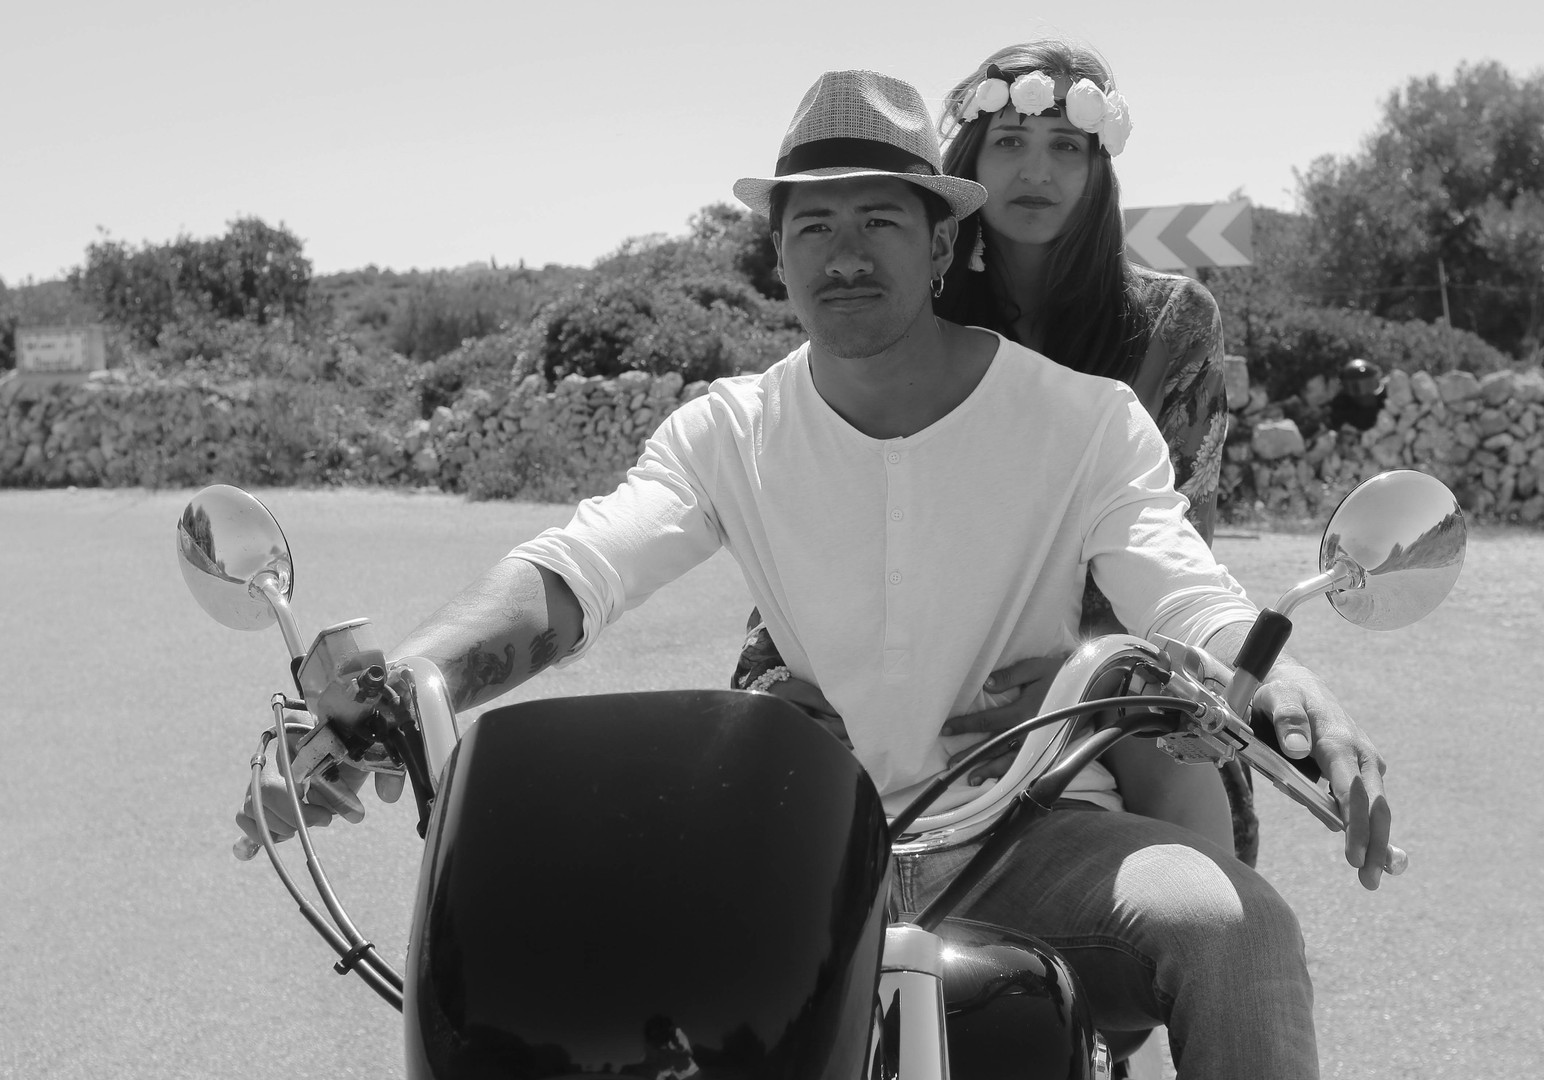 Boho Couple on mororbike Black and white